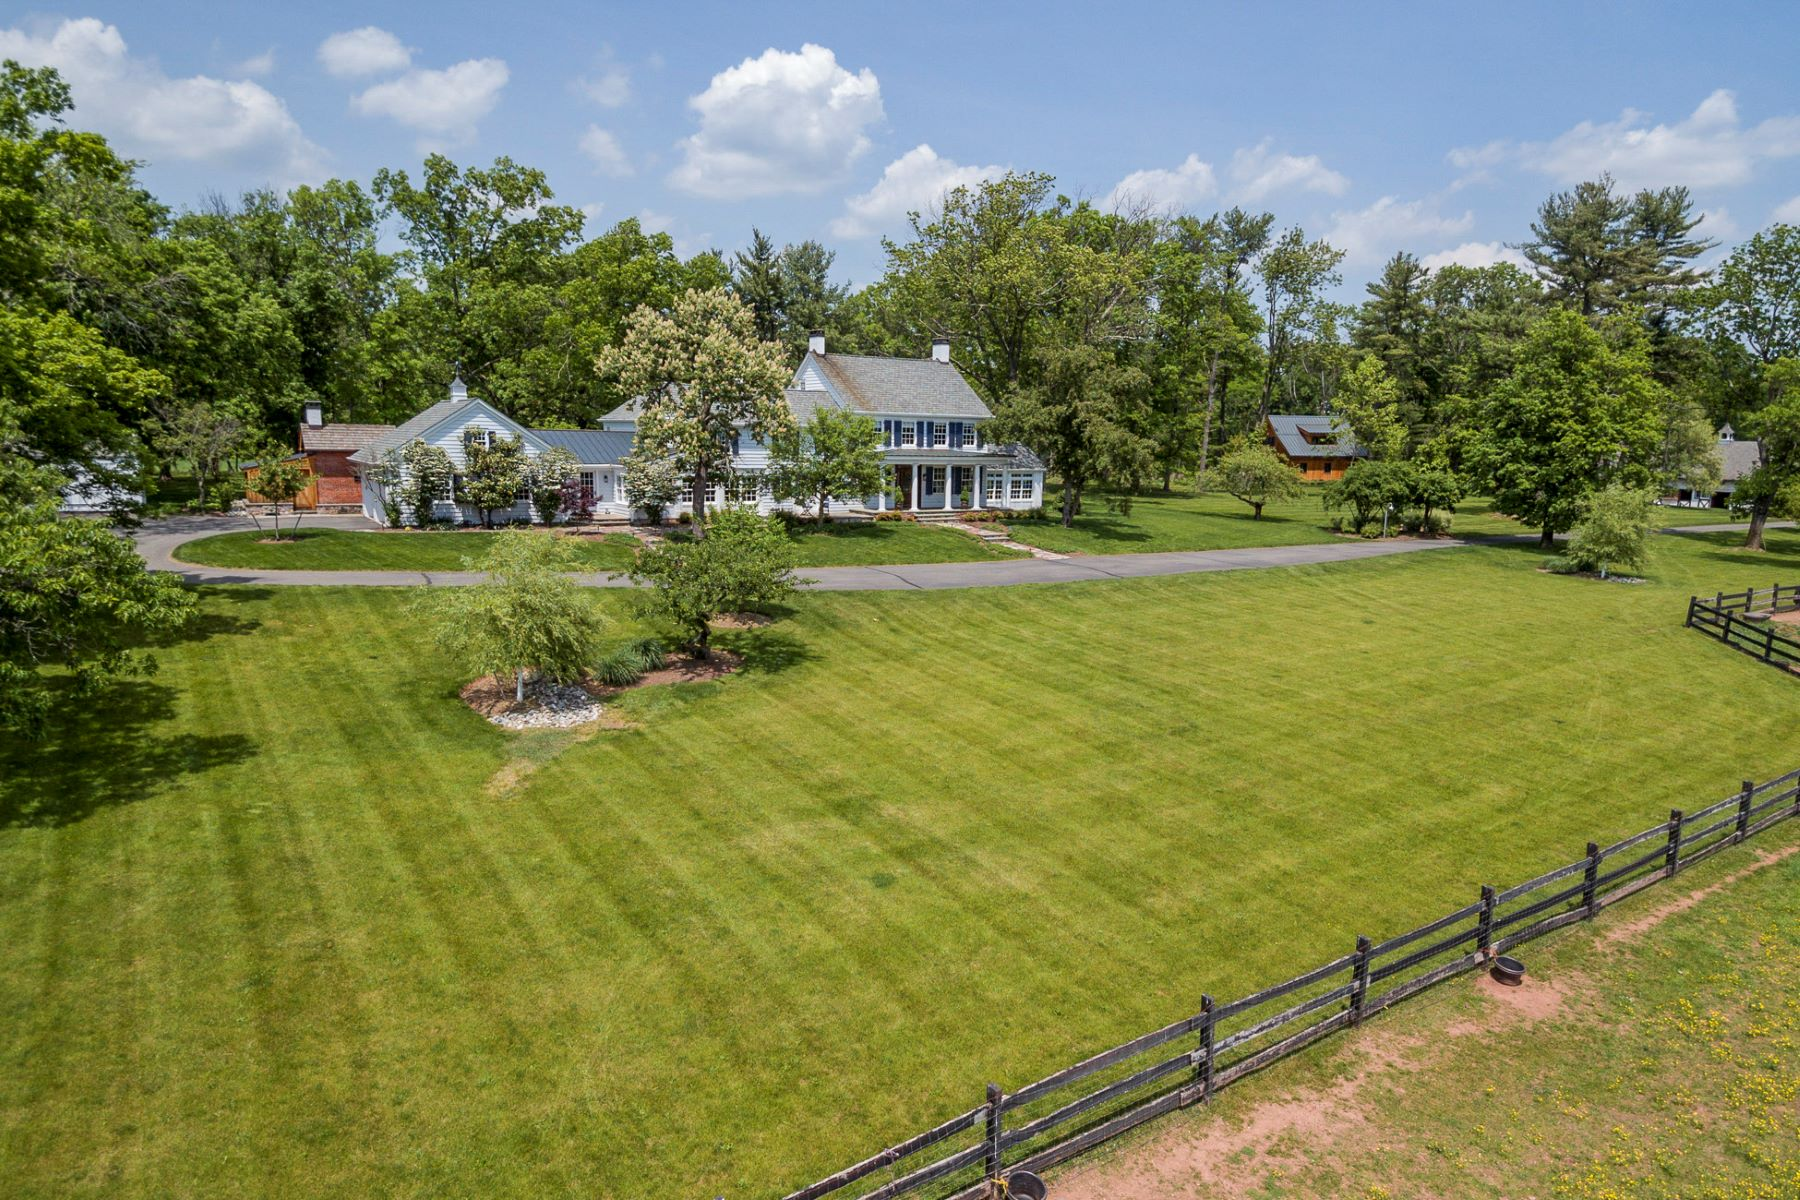 Single Family Home for Sale at Historic Farm Reimagined for the Modern Equestrian - Hopewell Township 266 Province Line Road Skillman, New Jersey 08558 United StatesIn/Around: Hopewell Township